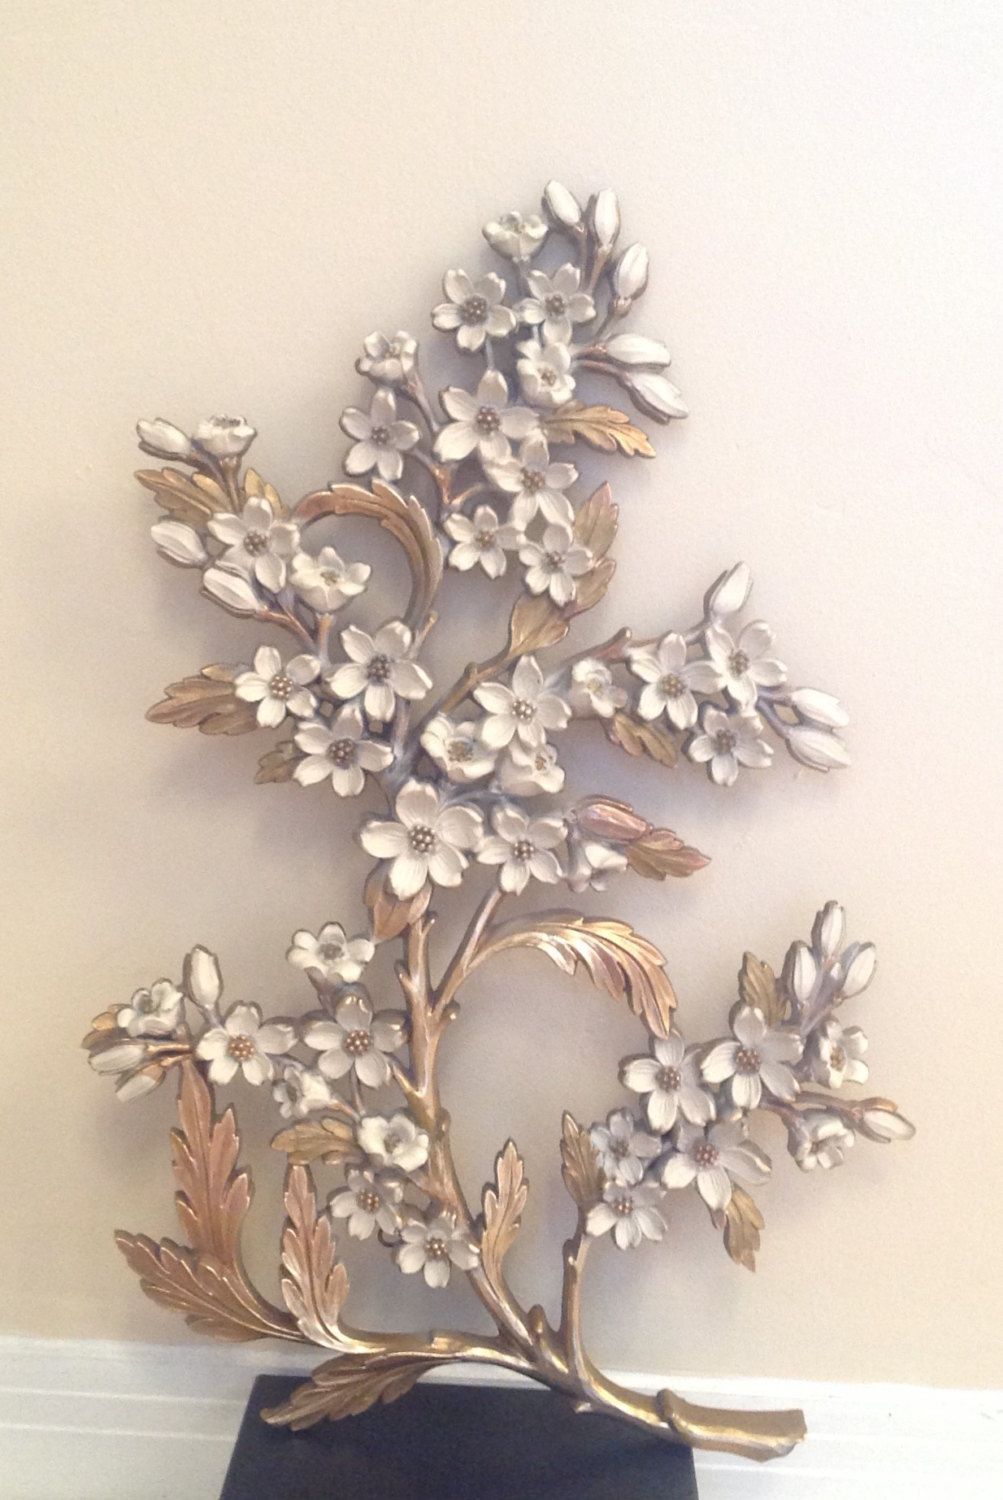 1967 Syroco Made In U S A Wall Hanging Hollywood Regency Vintage Gold And Ivory No 7064 18 Tall Wall Hanging Faux Wood Wall Gold Walls